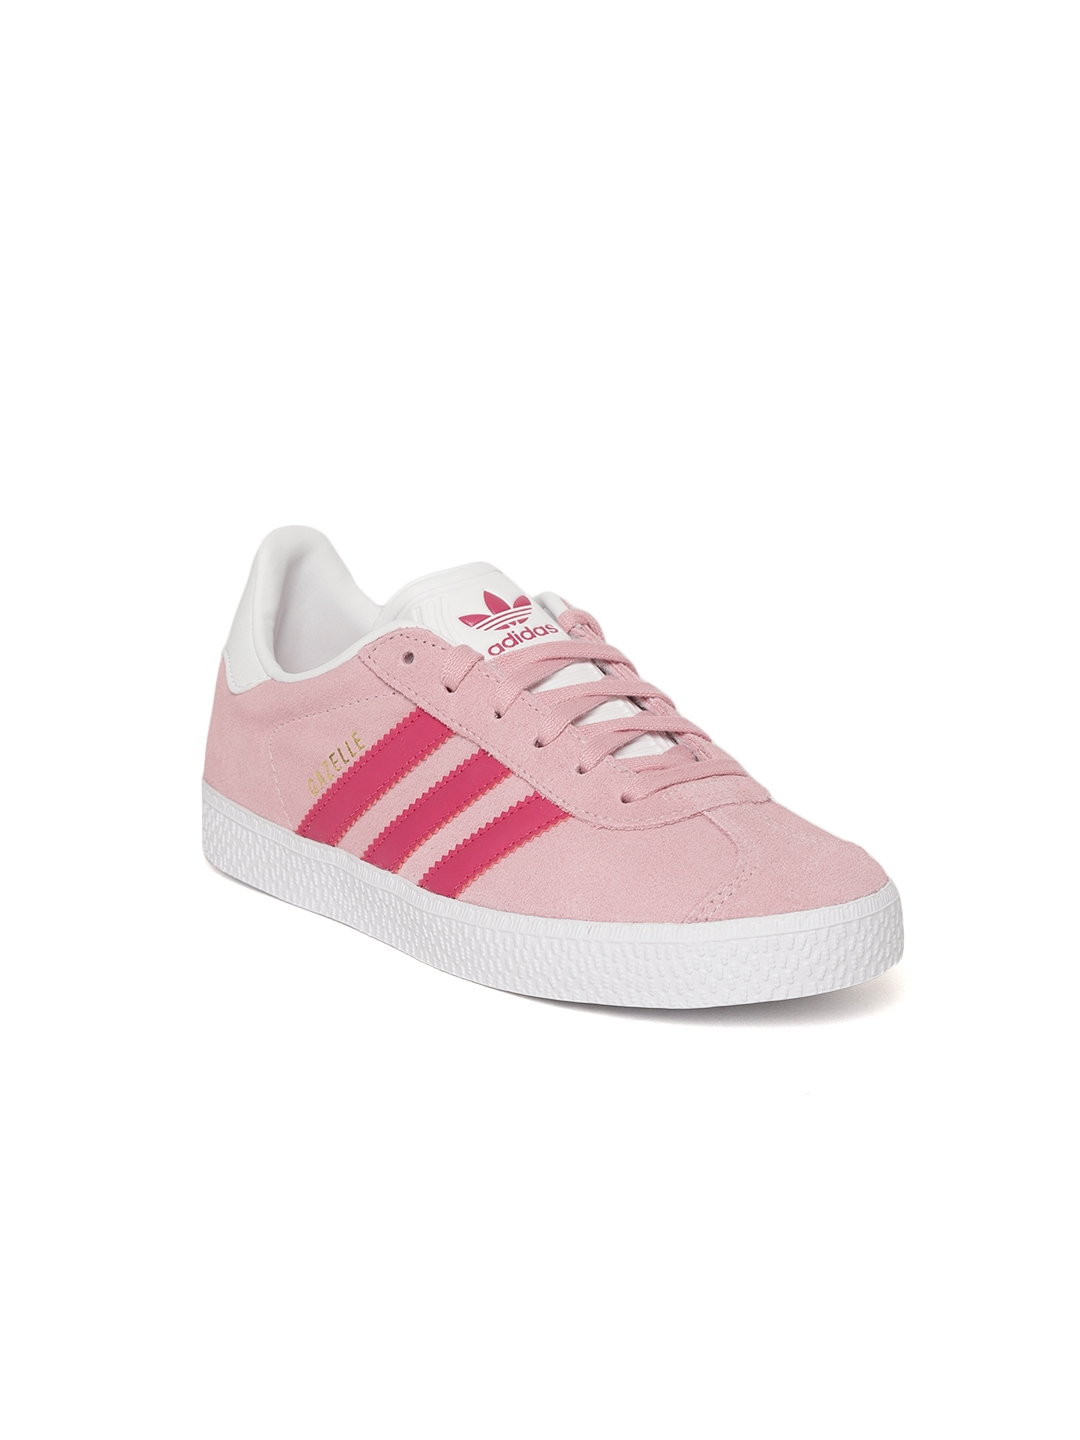 official photos 44dcc 40817 Adidas Originals Kids Pink Gazelle C Suede Sneakers